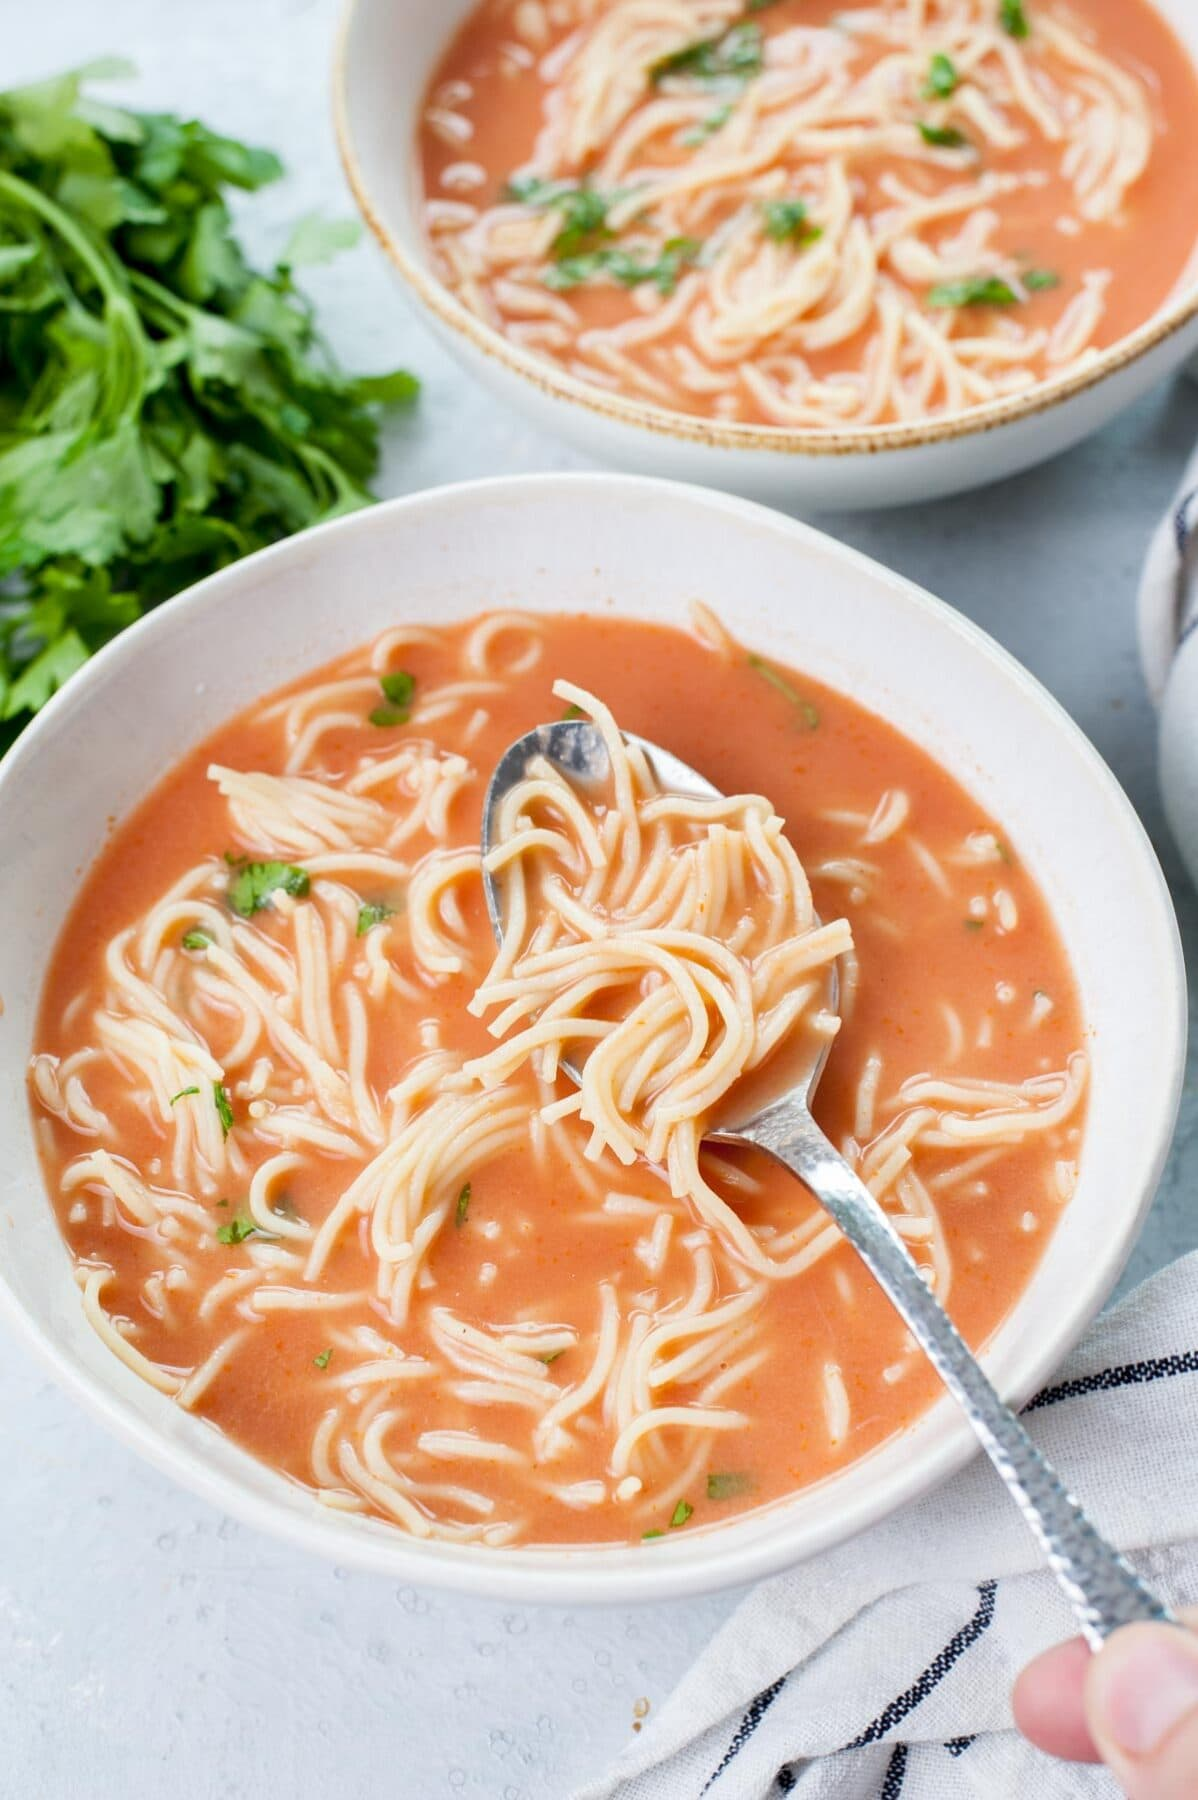 Polish Tomato Soup (zupa pomidorowa) in a white plate, served with noodles and chopped parsley.